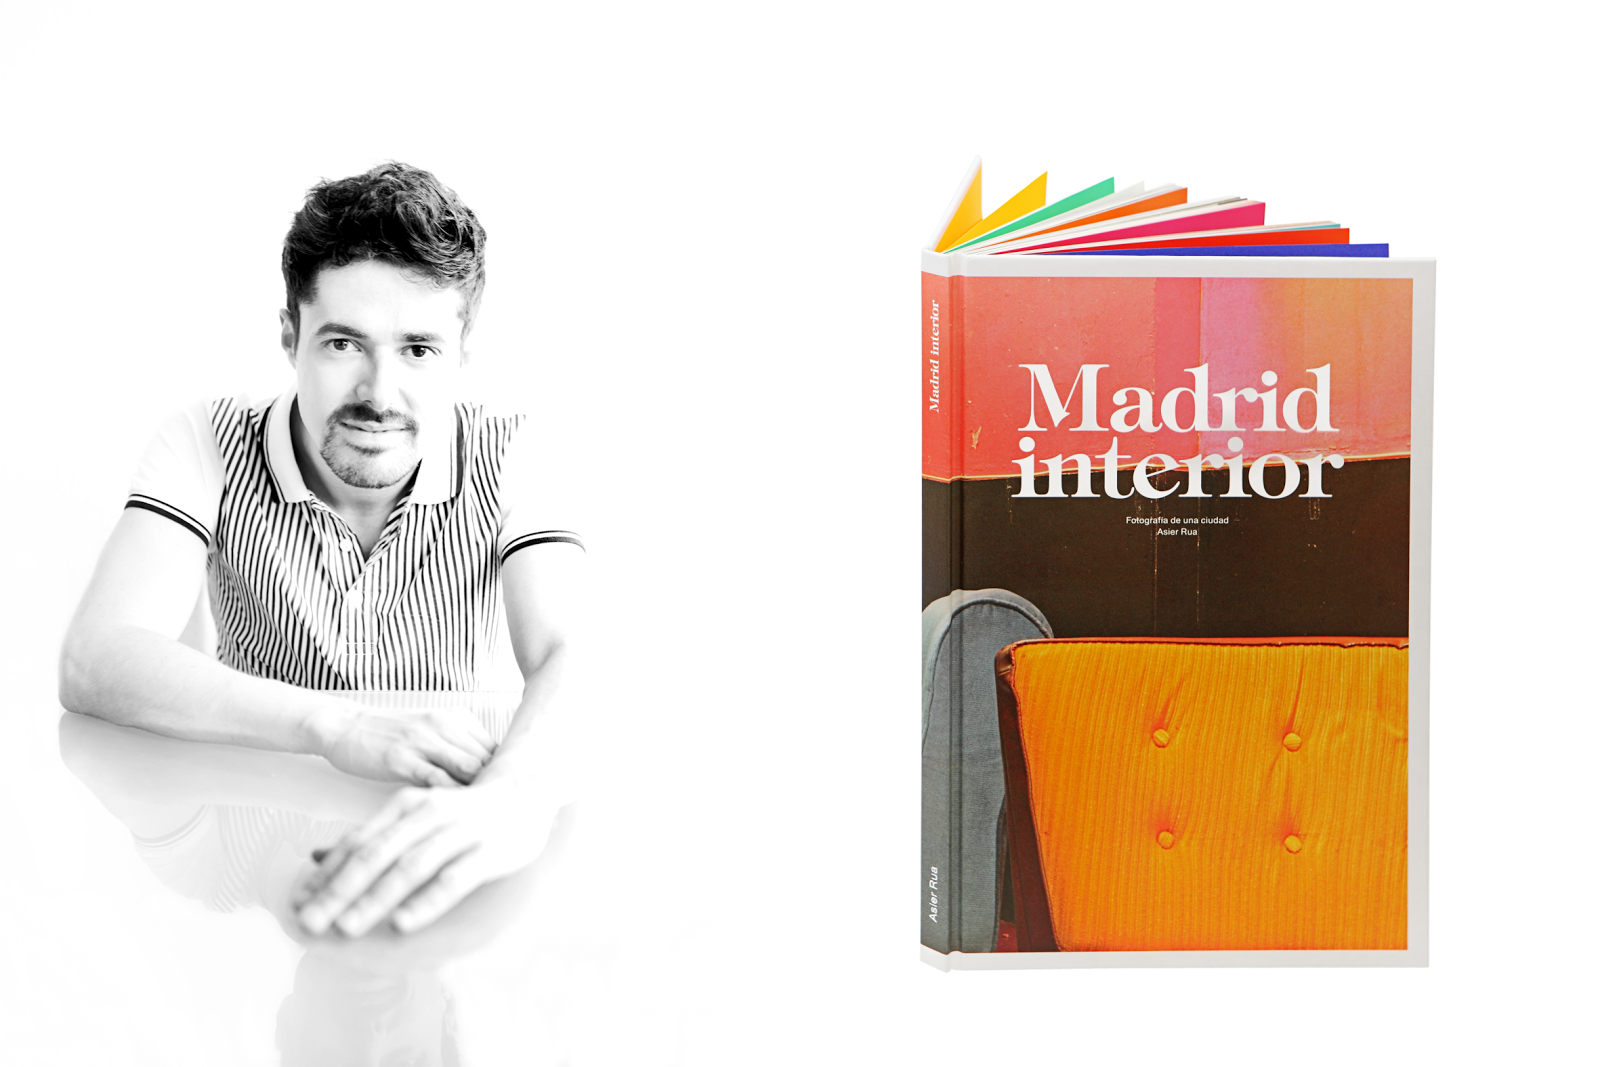 Libro Madrid interior